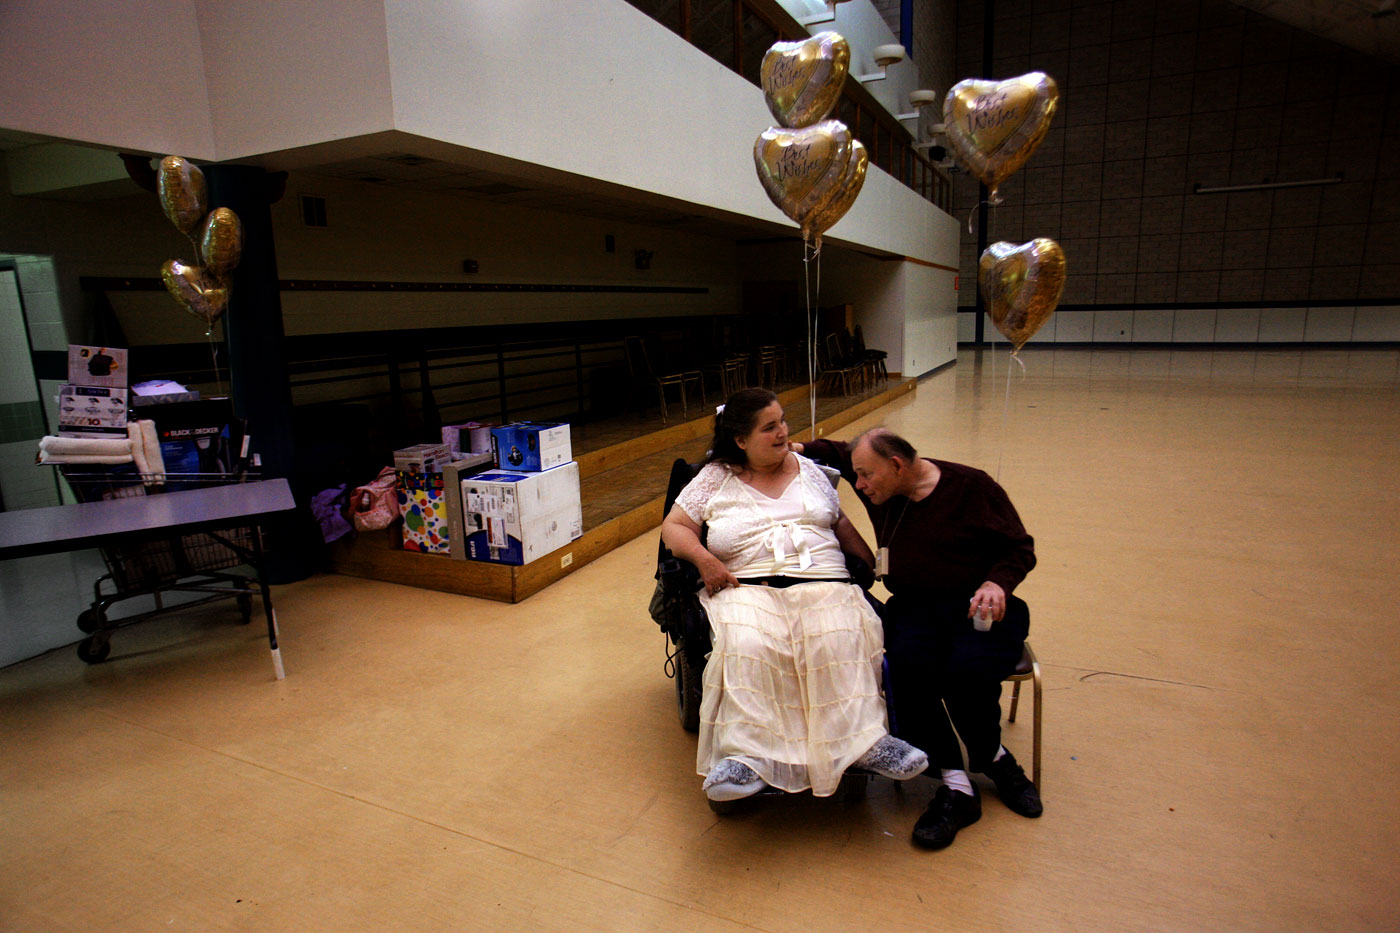 The happy couple share a quiet moment together during a wedding shower at New Horizons.